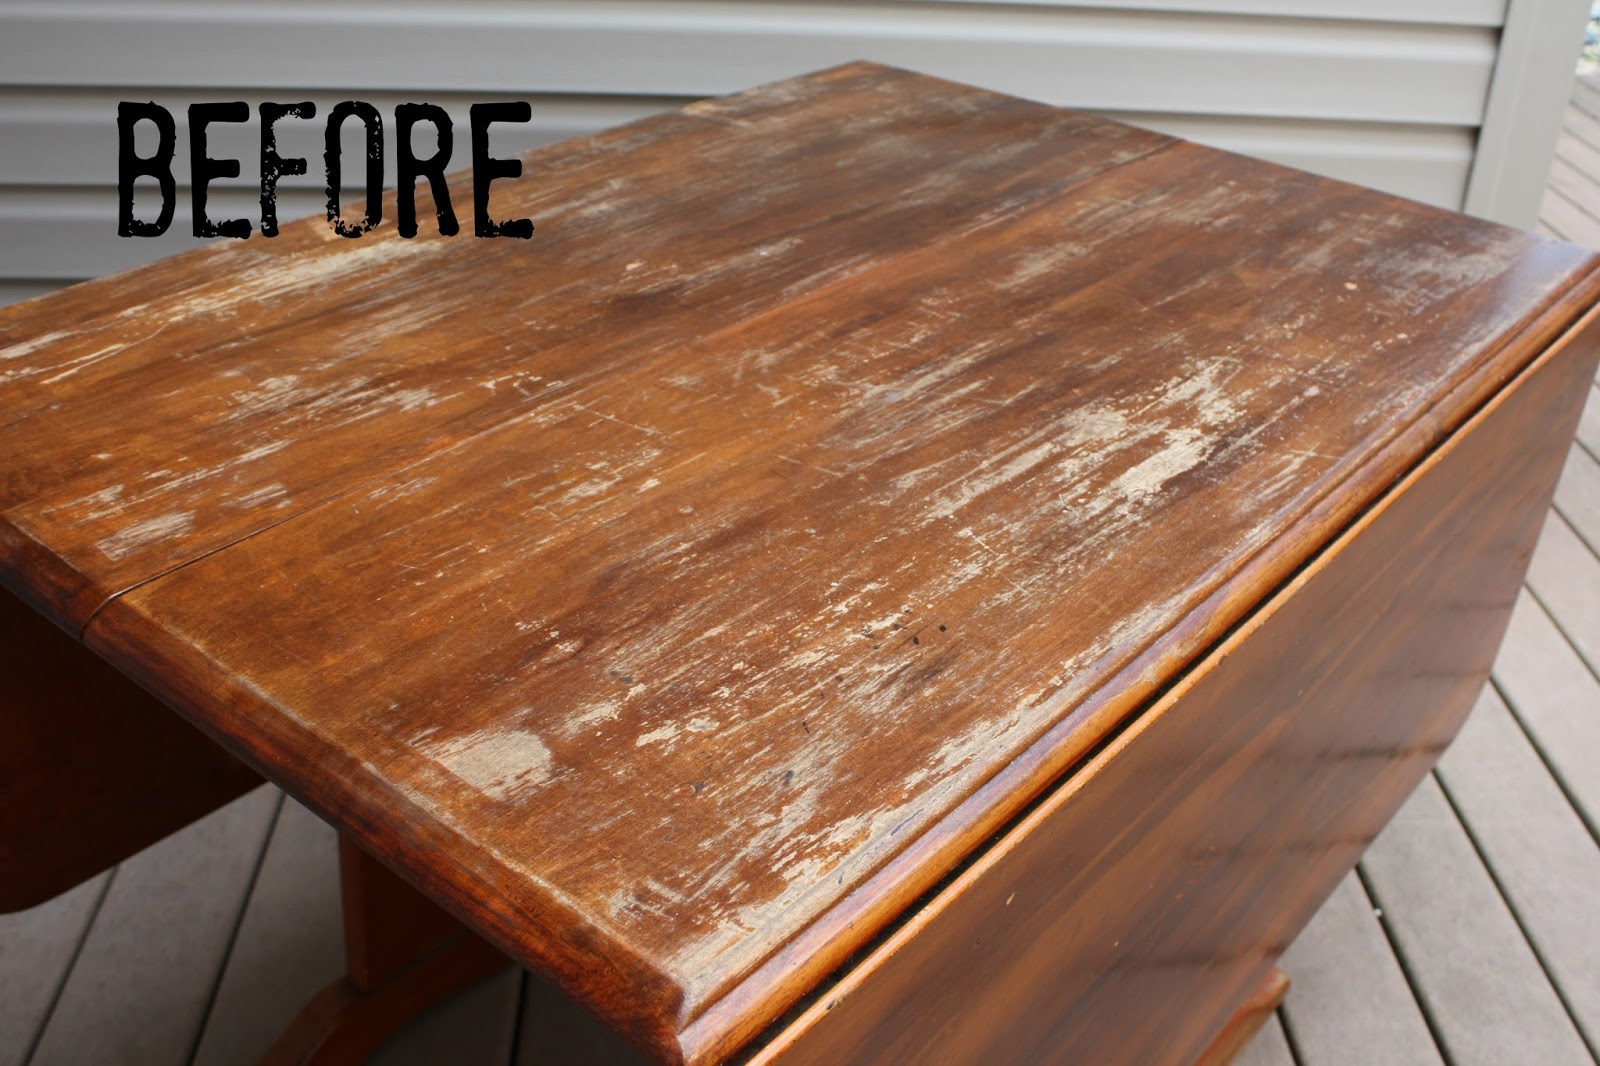 Solid wood drop leaf table with severe damage to finish